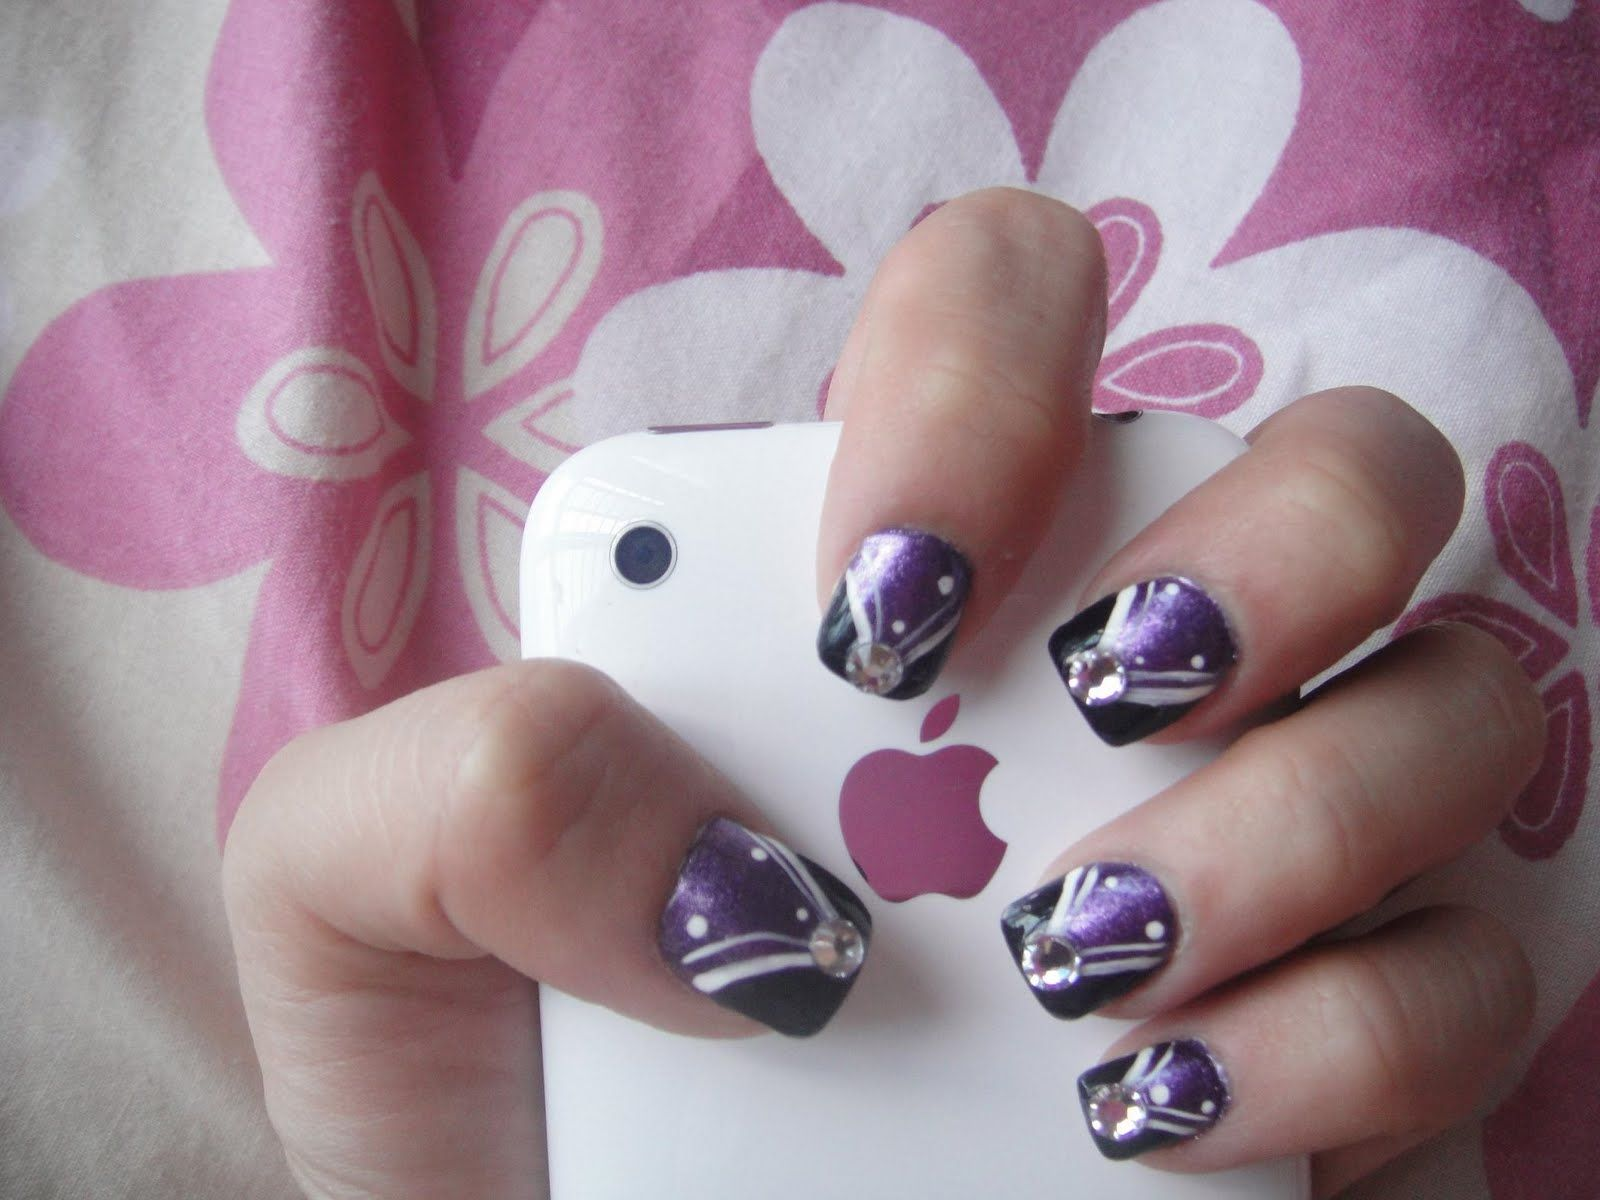 Find another beautiful images gallery of cool images of nail designs